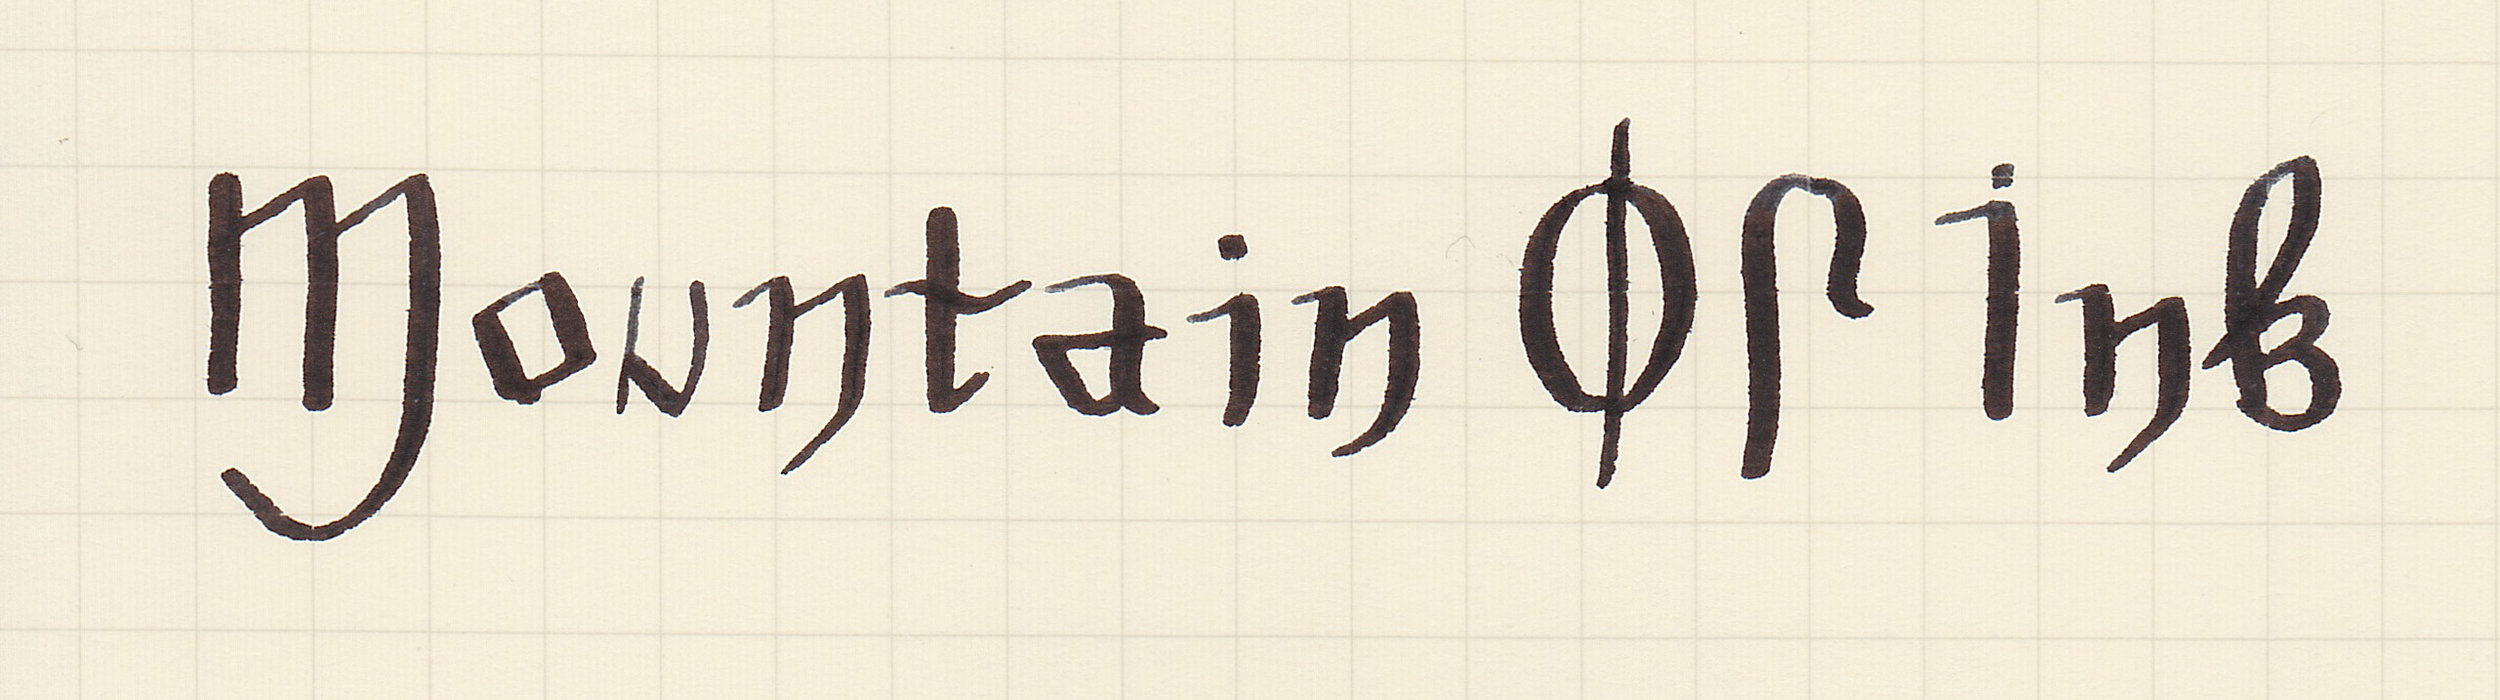 Court Hand, written with a 1.1 flex stub nib